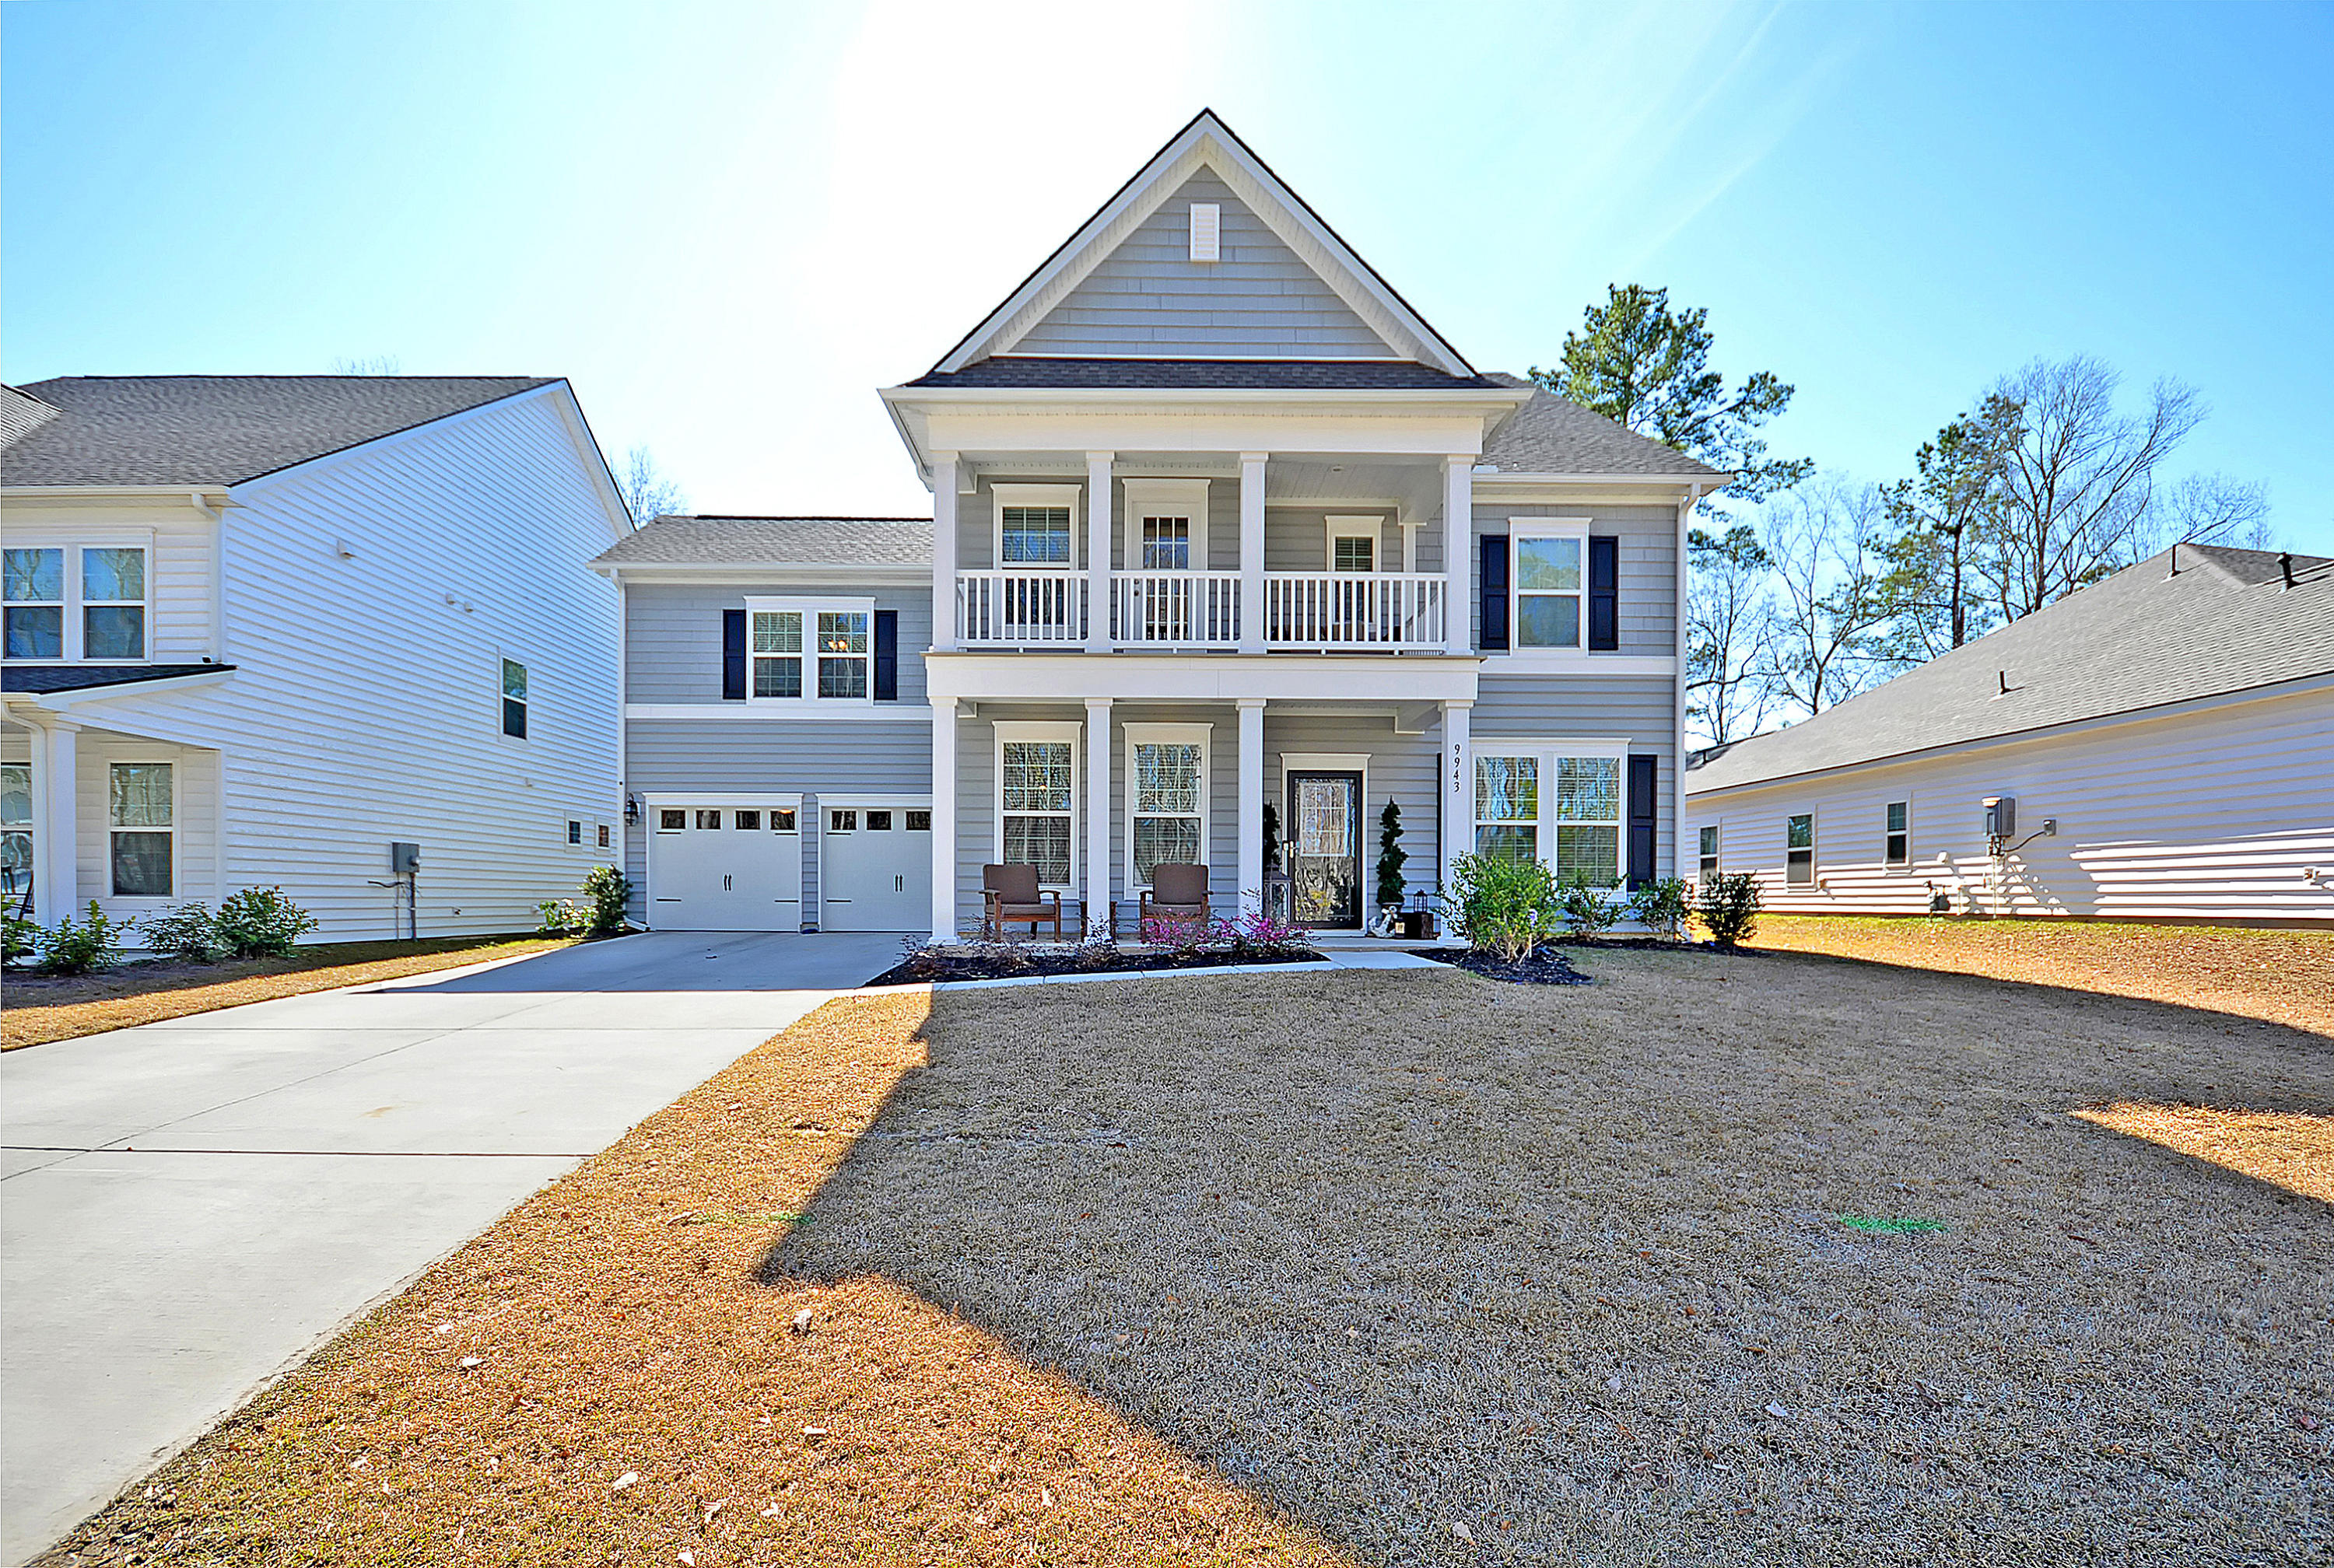 9943 Honeylocust Lane Ladson, SC 29456